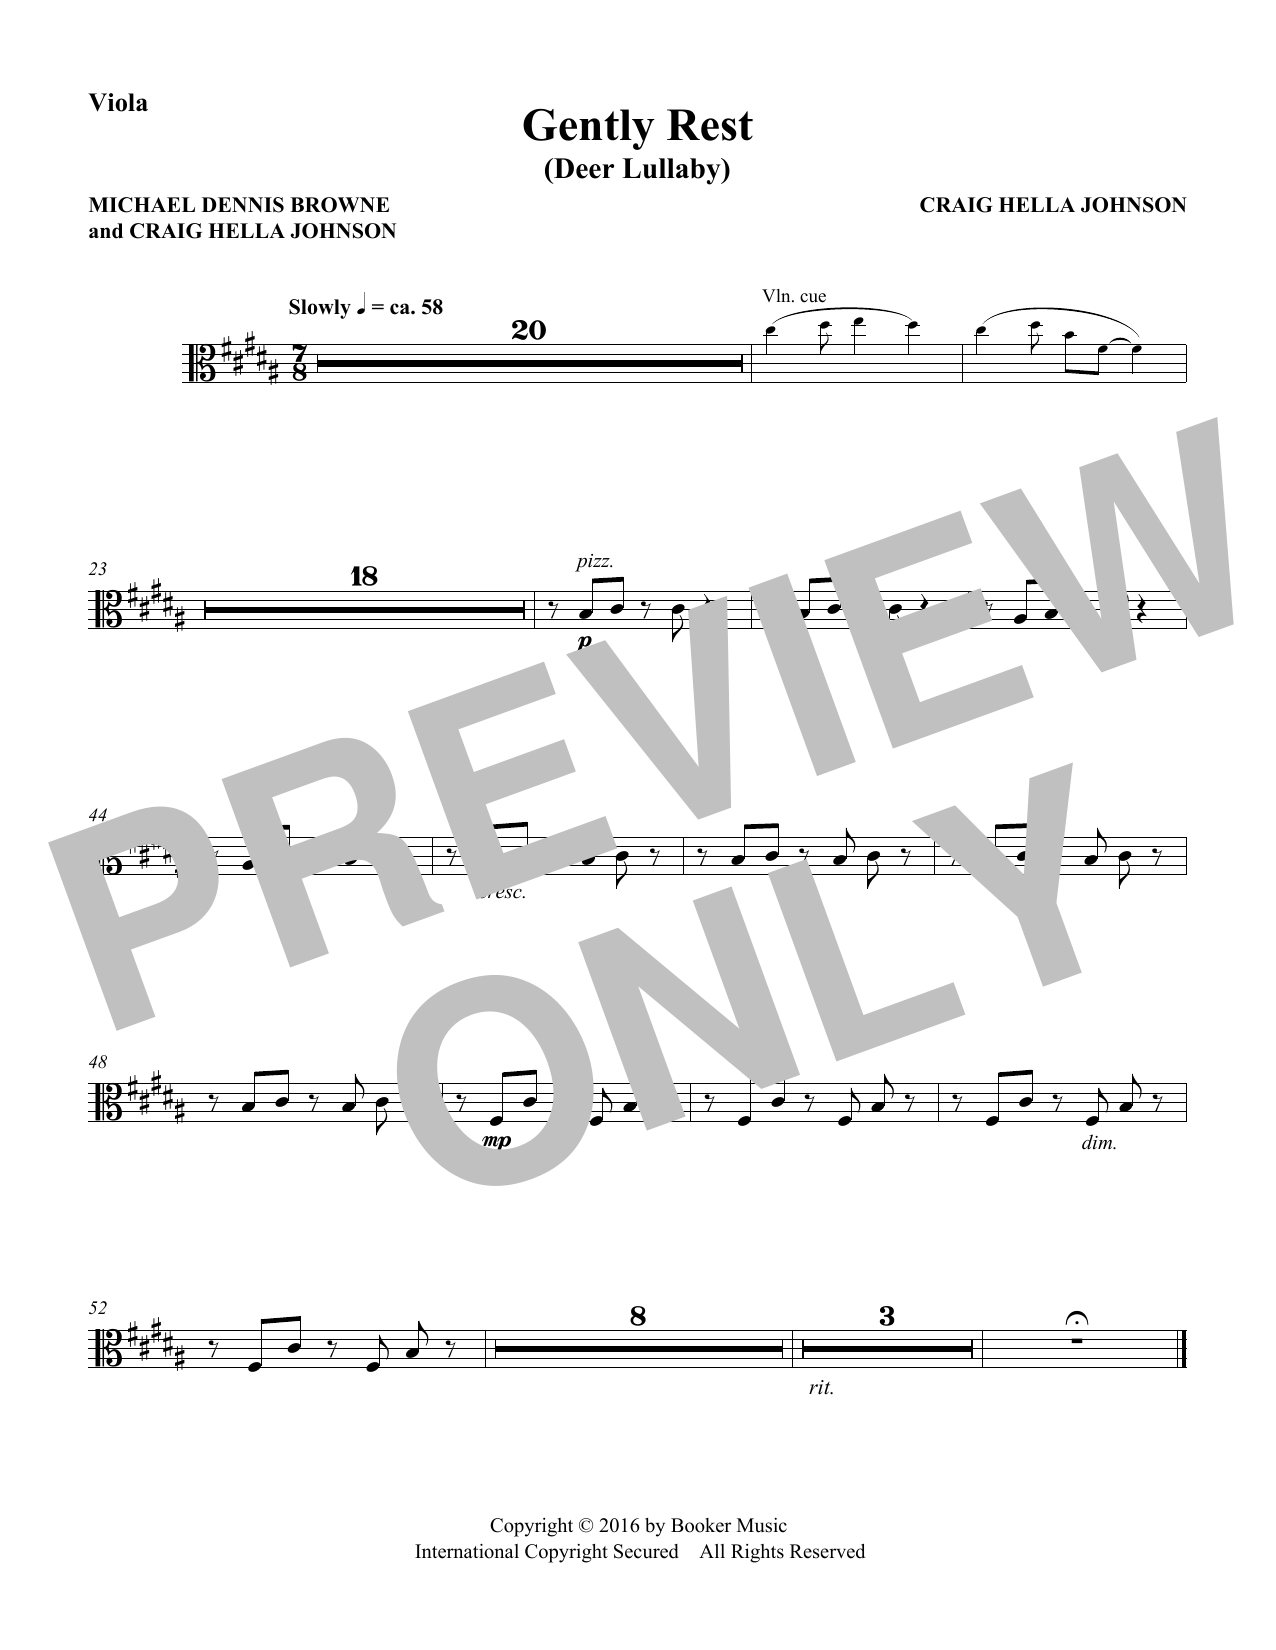 Michael Dennis Browne & Craig Hella Johnson Gently Rest (Deer Lullaby) (from Considering Matthew Shepard) - Viola sheet music preview music notes and score for Choir Instrumental Pak including 1 page(s)